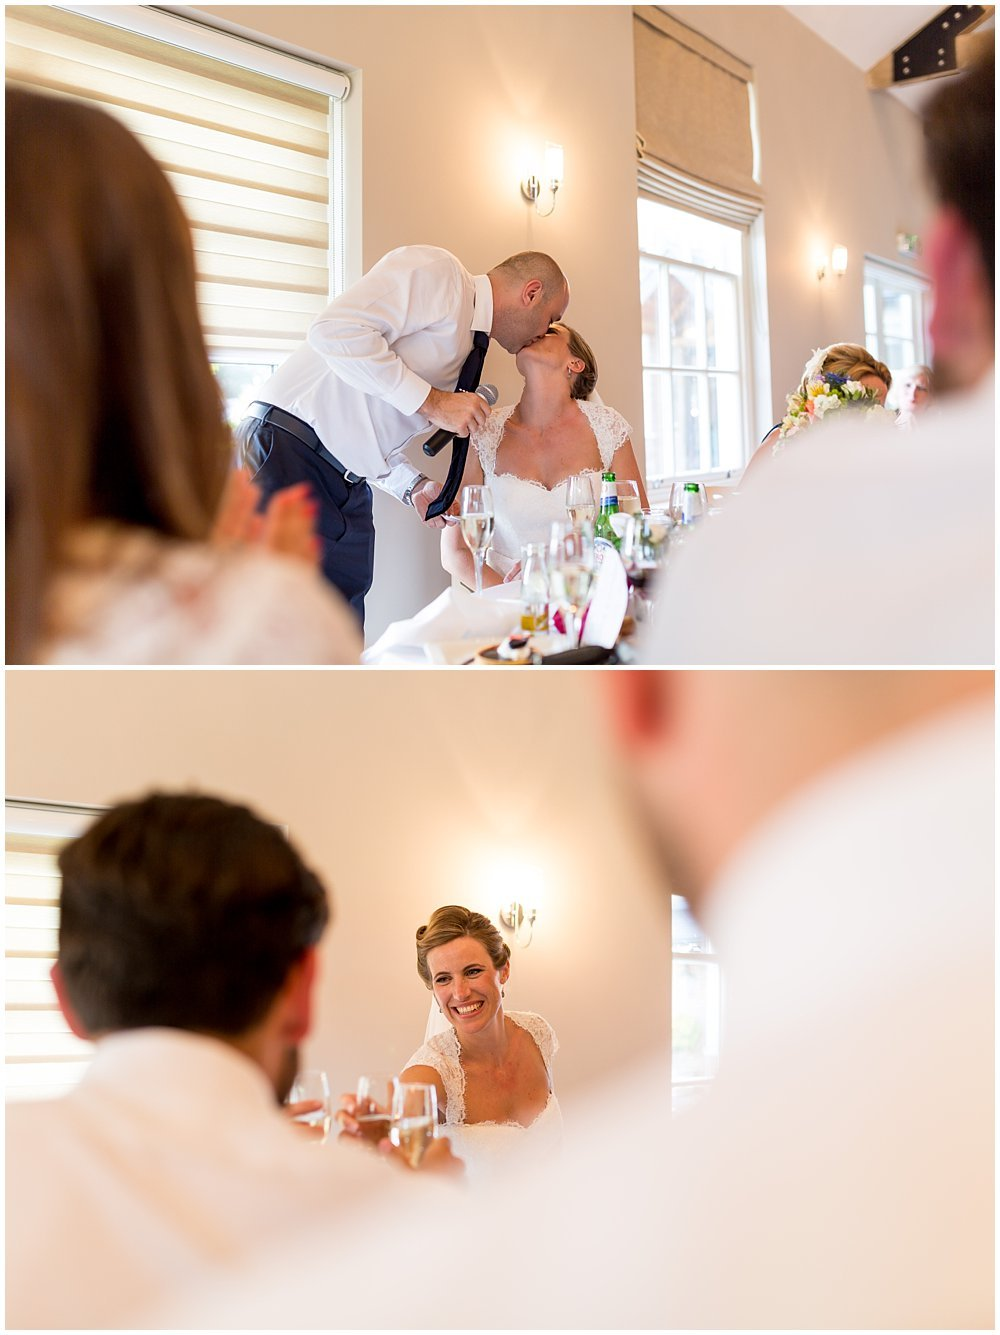 AMY AND DUNCAN NORWICH CATHEDRAL AND THE BOATHOUSE WEDDING - NORWICH AND NORFOLK WEDDING PHOTOGRAPHER 50